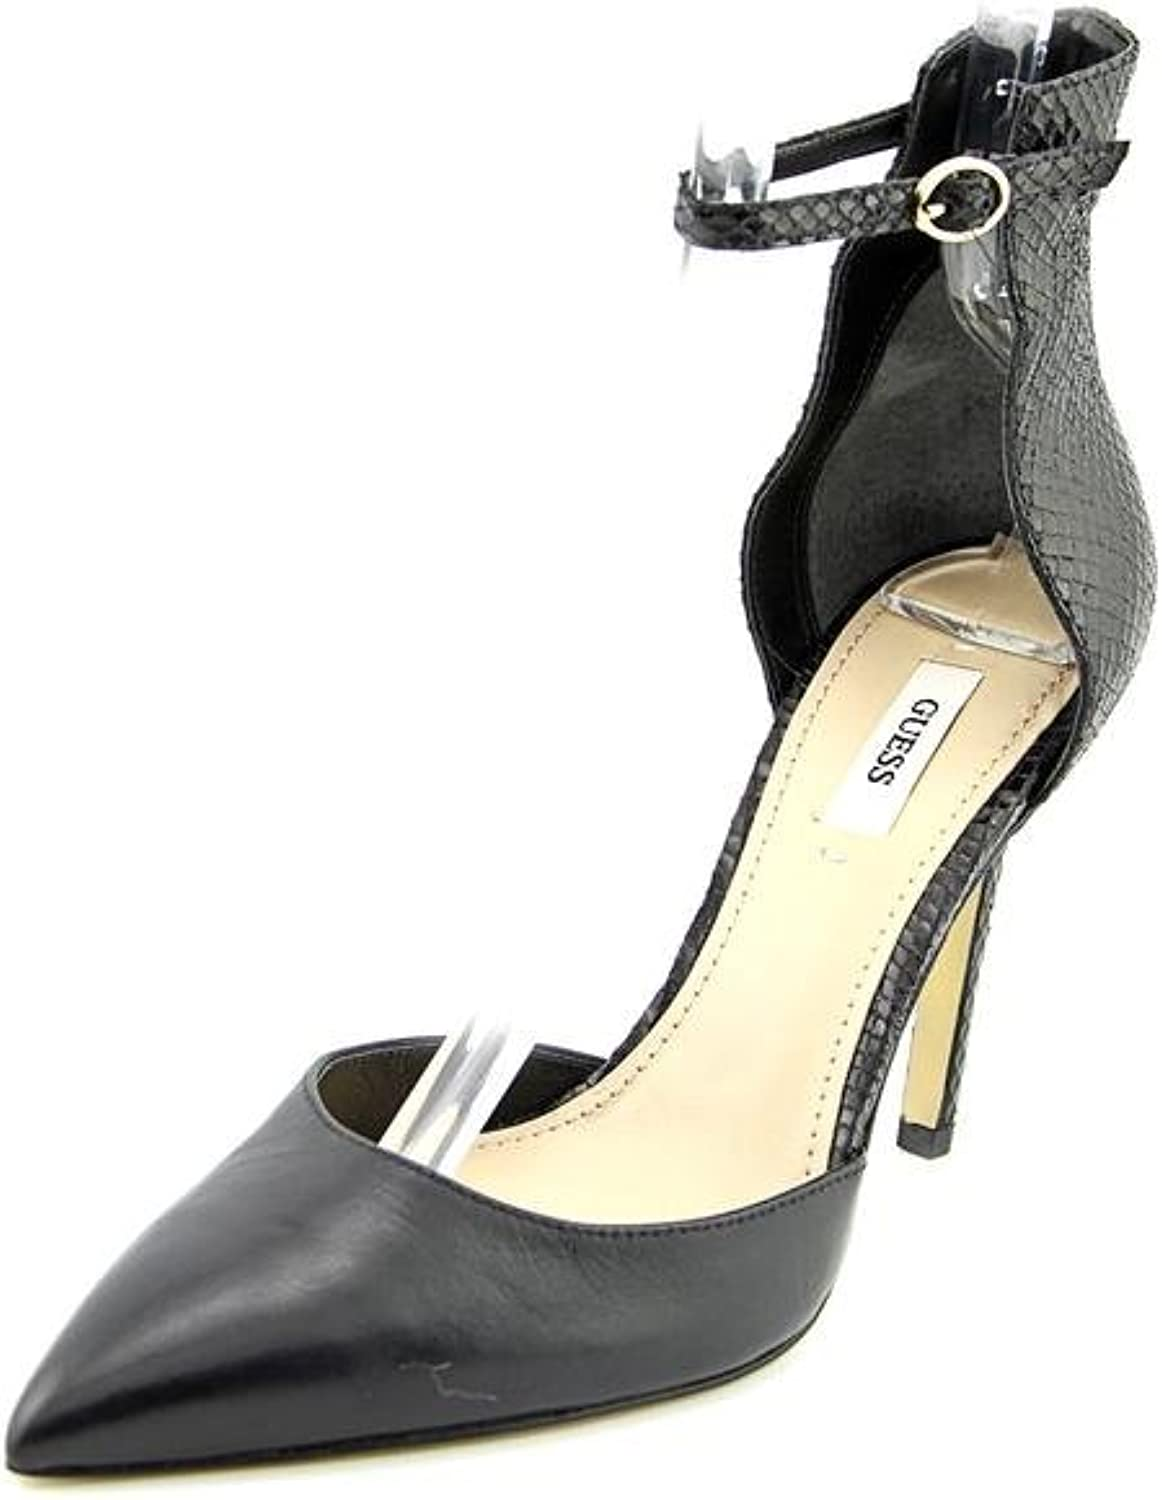 GUESS Women's Abaih 2 Black Leather D'Orsay 11 M